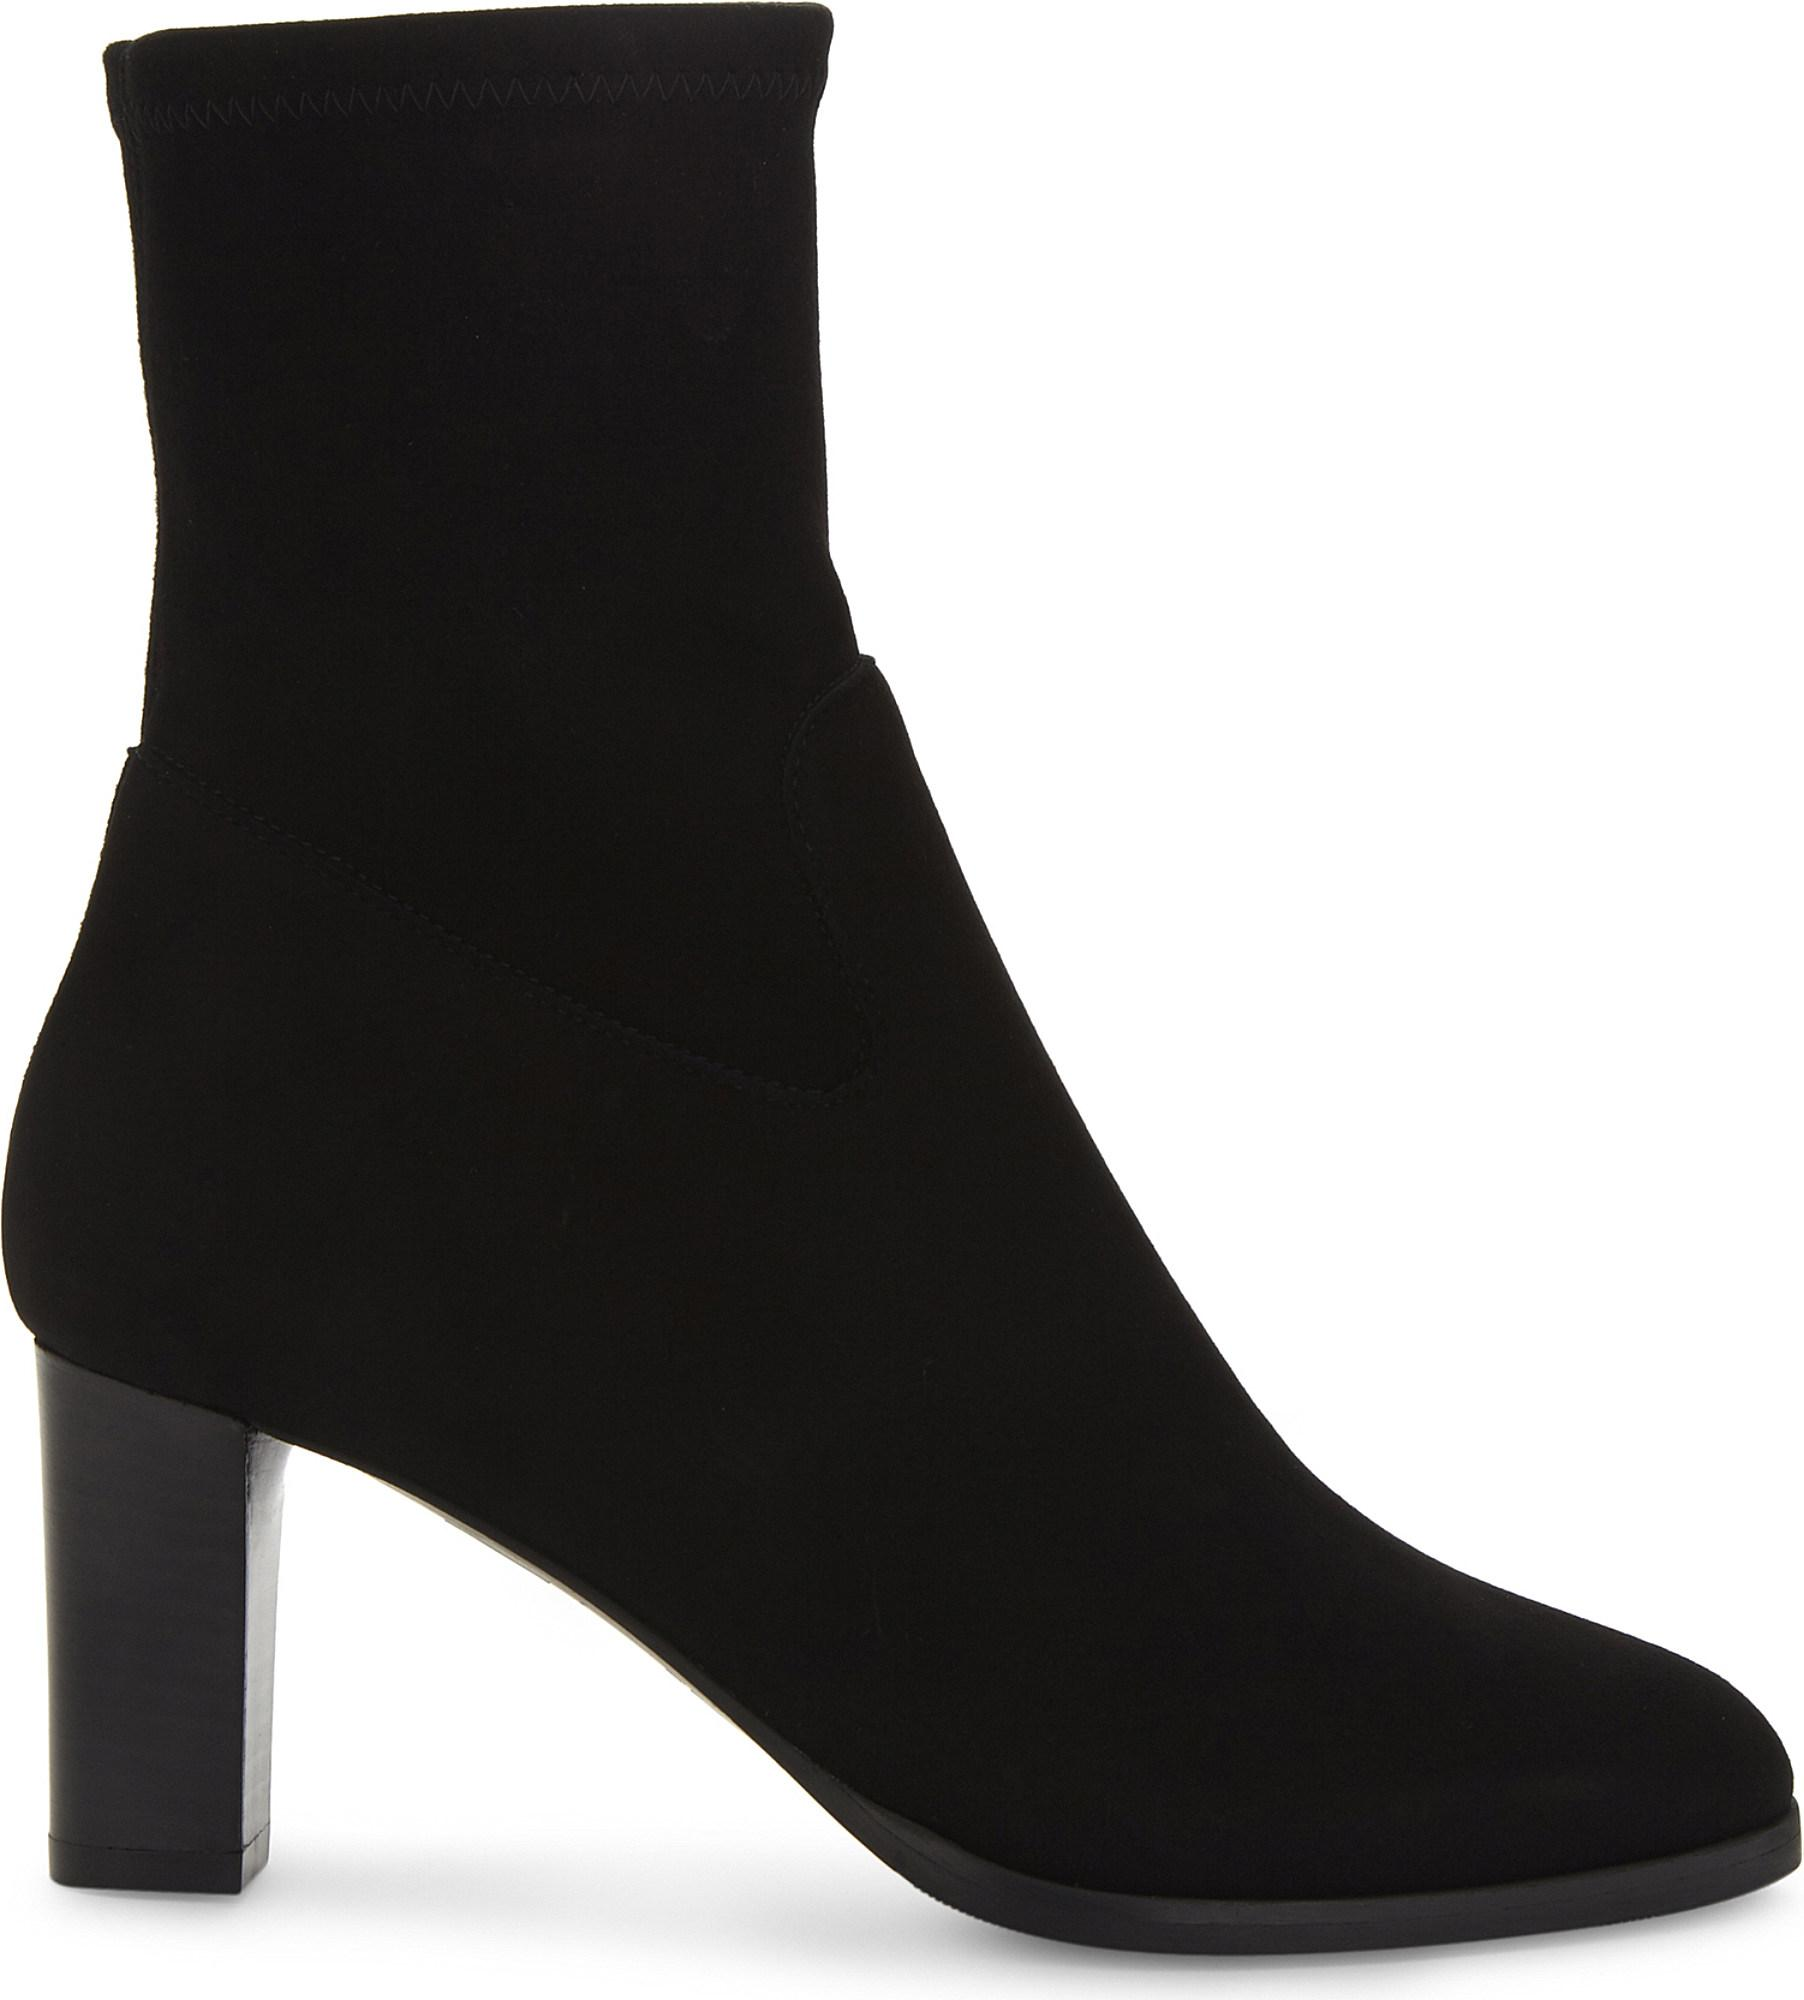 Black Lyst bennett Kayla Boots Save Suede In L Stretch Ankle k 77wrxzqnR